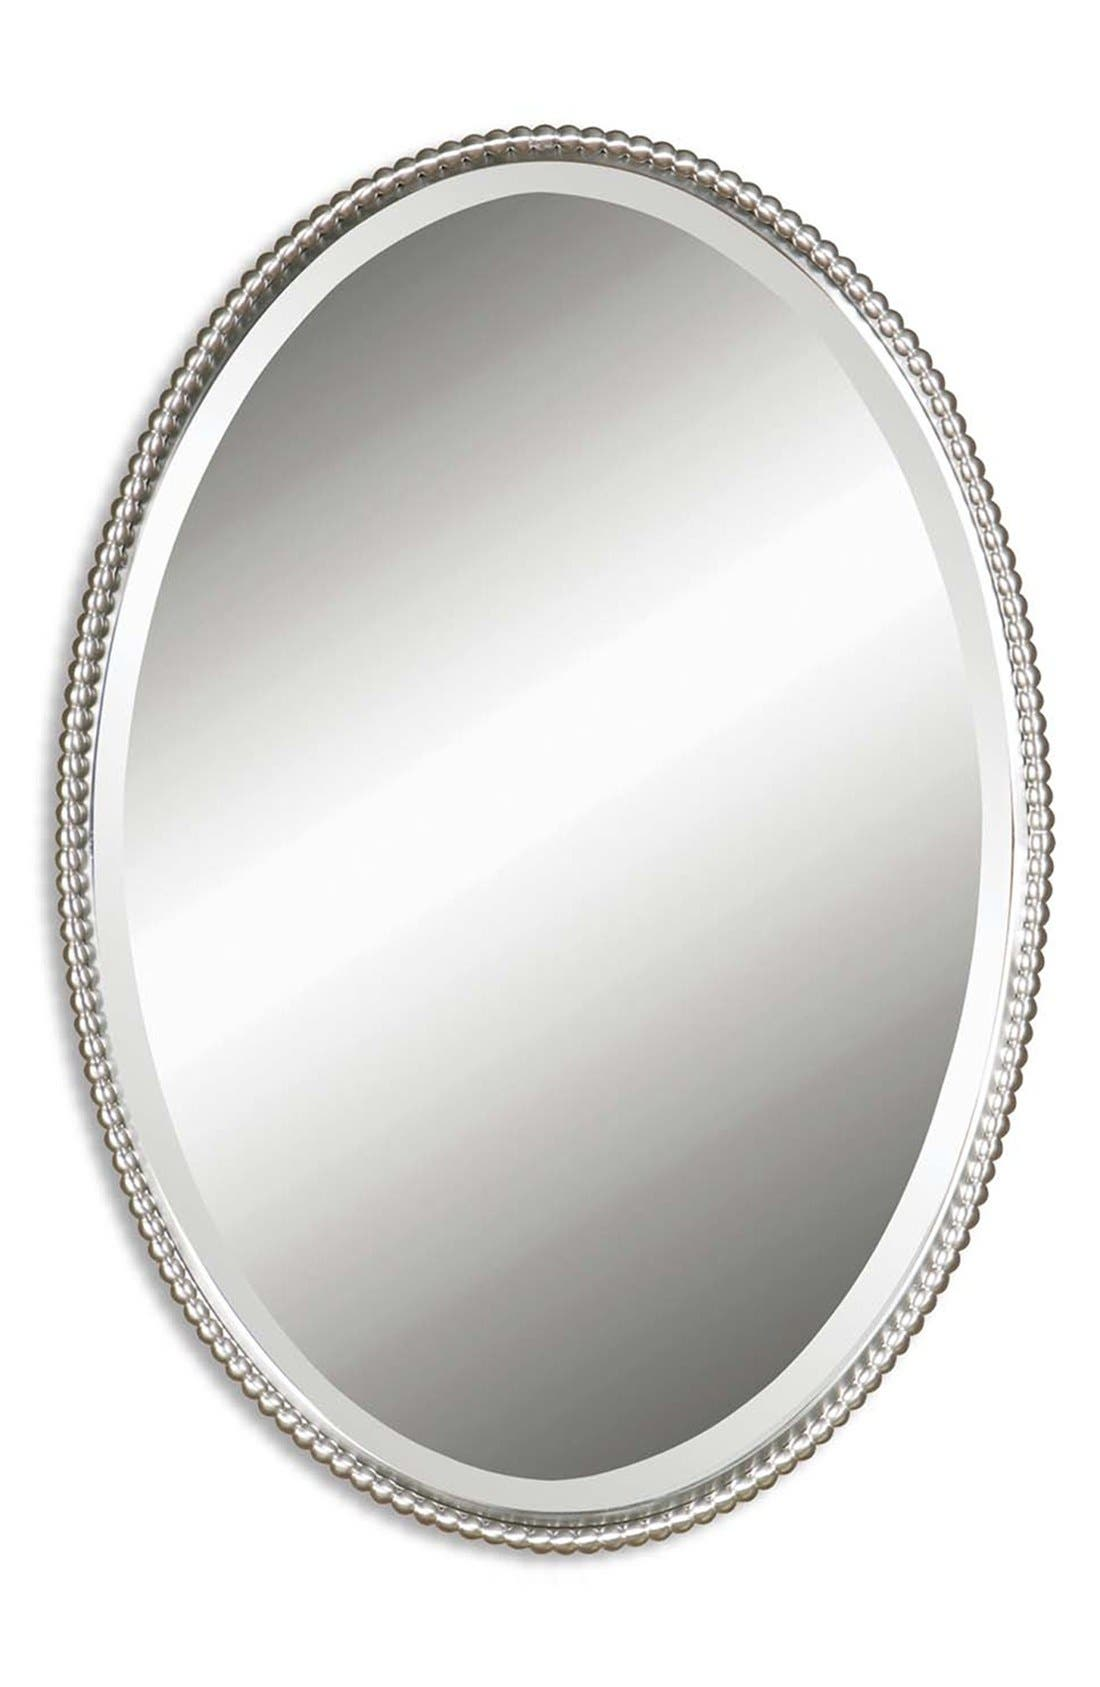 Alternate Image 1 Selected - Uttermost 'Sherise' Oval Mirror